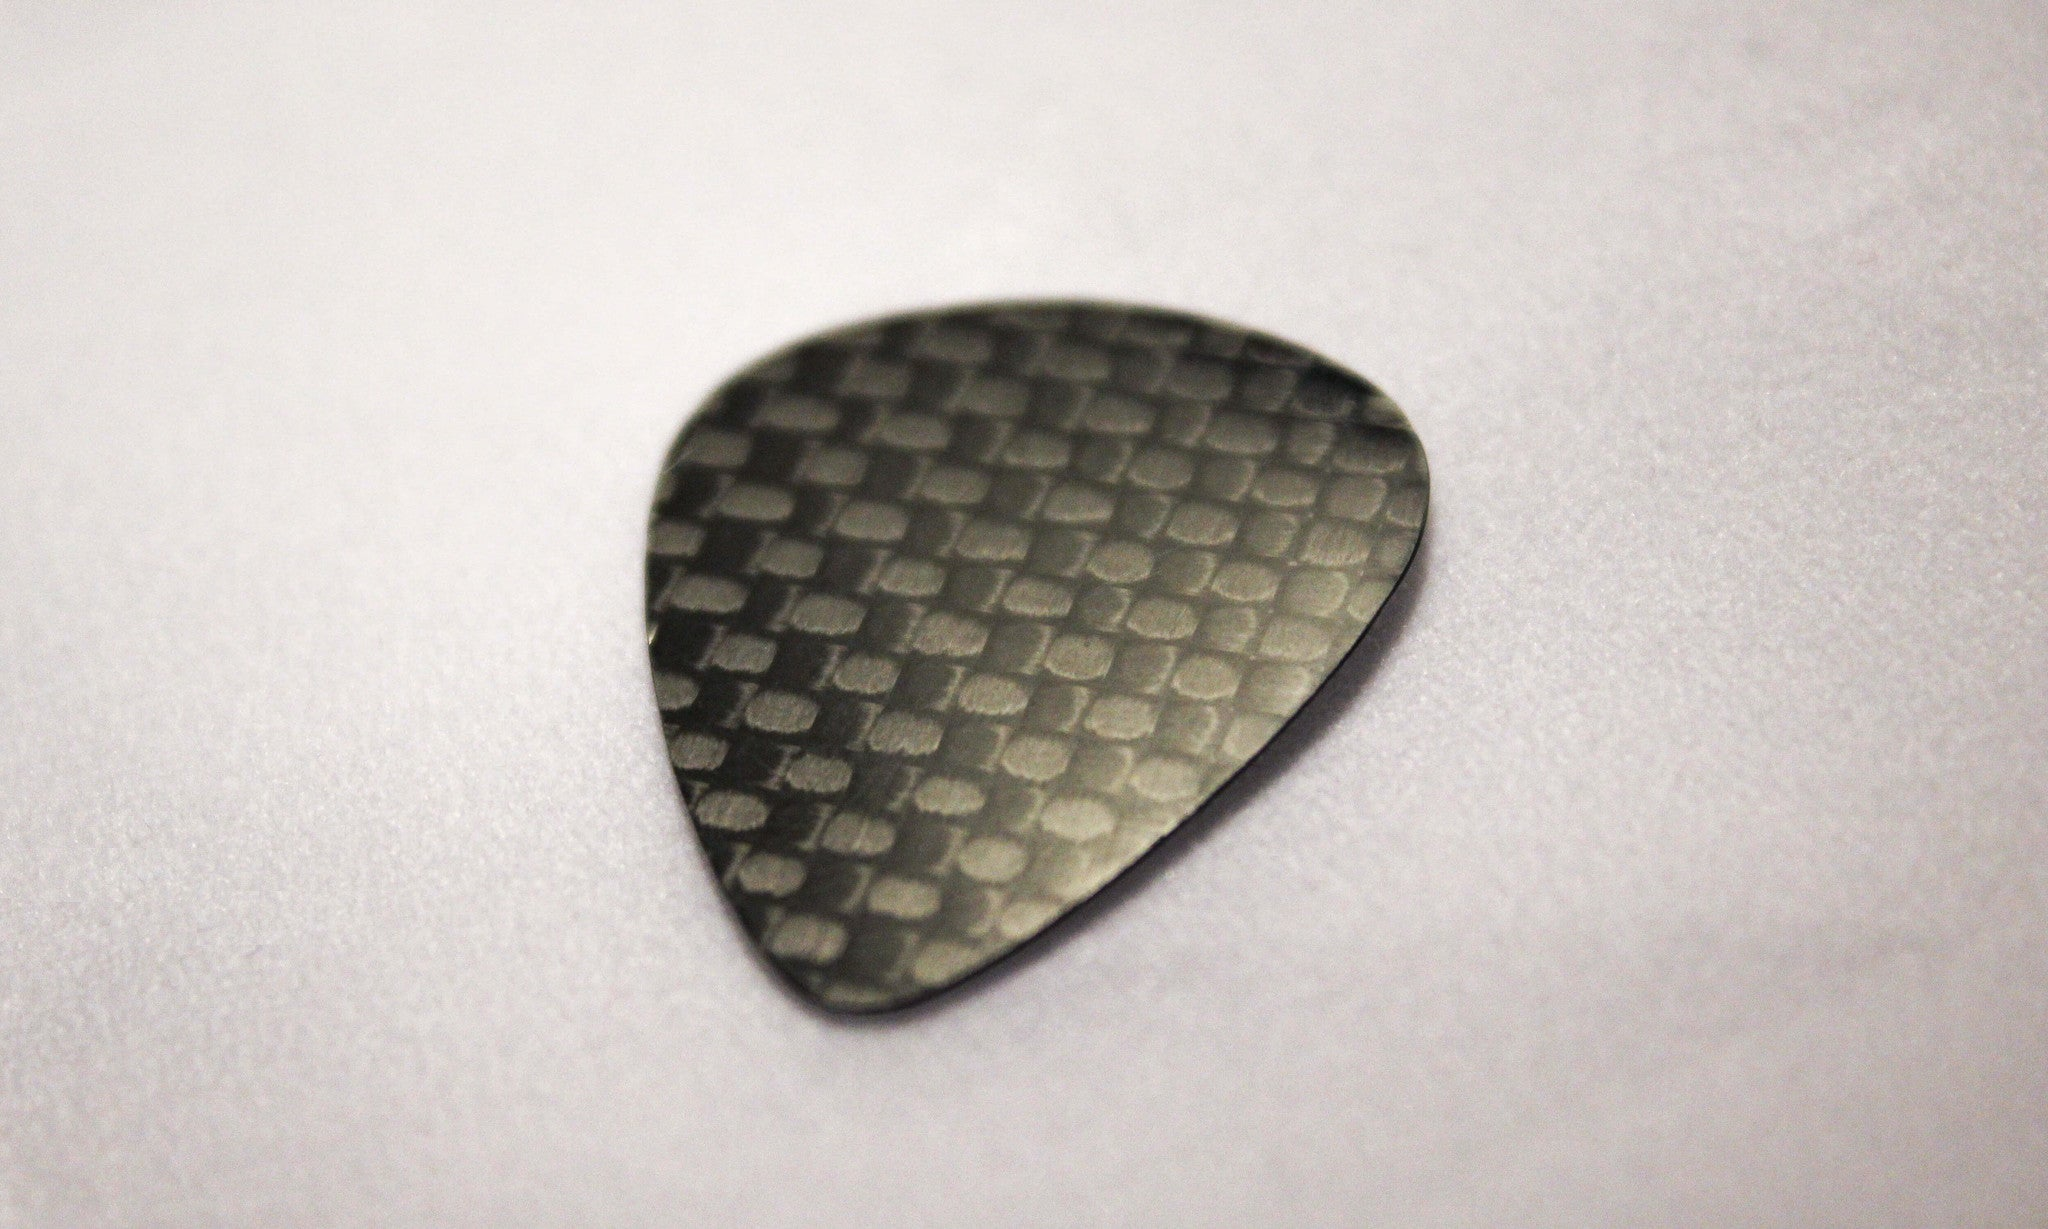 Carbon Fiber Guitar Pick 0.2 mm -  - 1